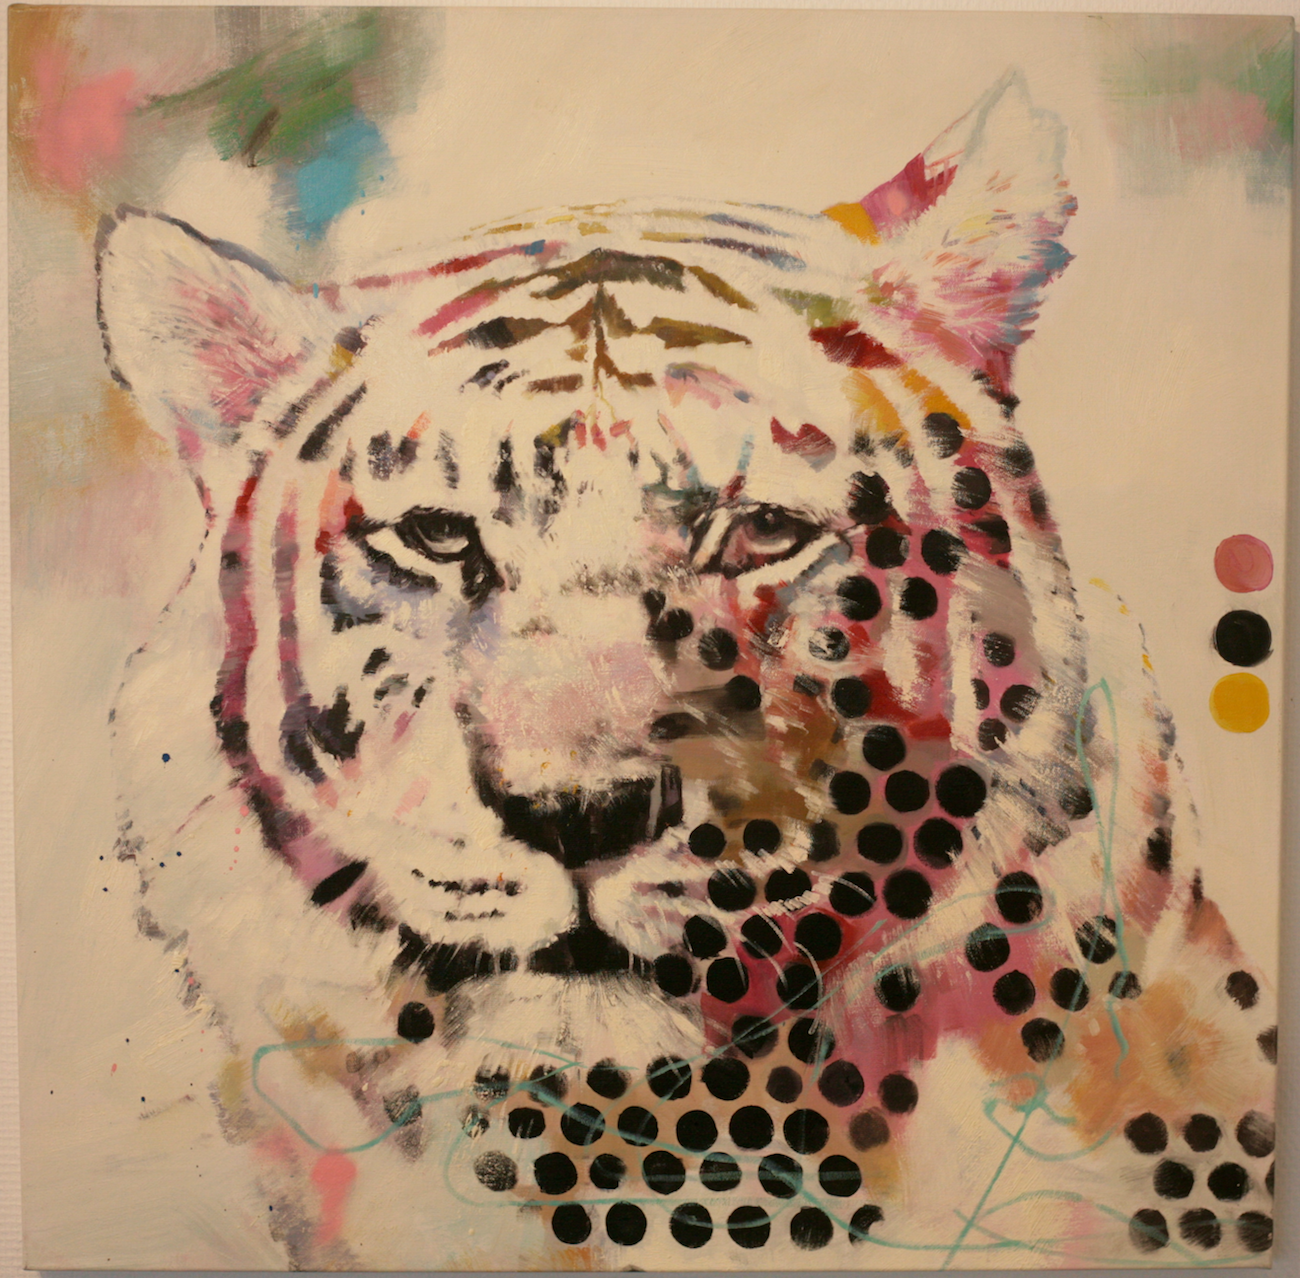 Robert Hilmersson - Eye of the Tiger, oil on canvas